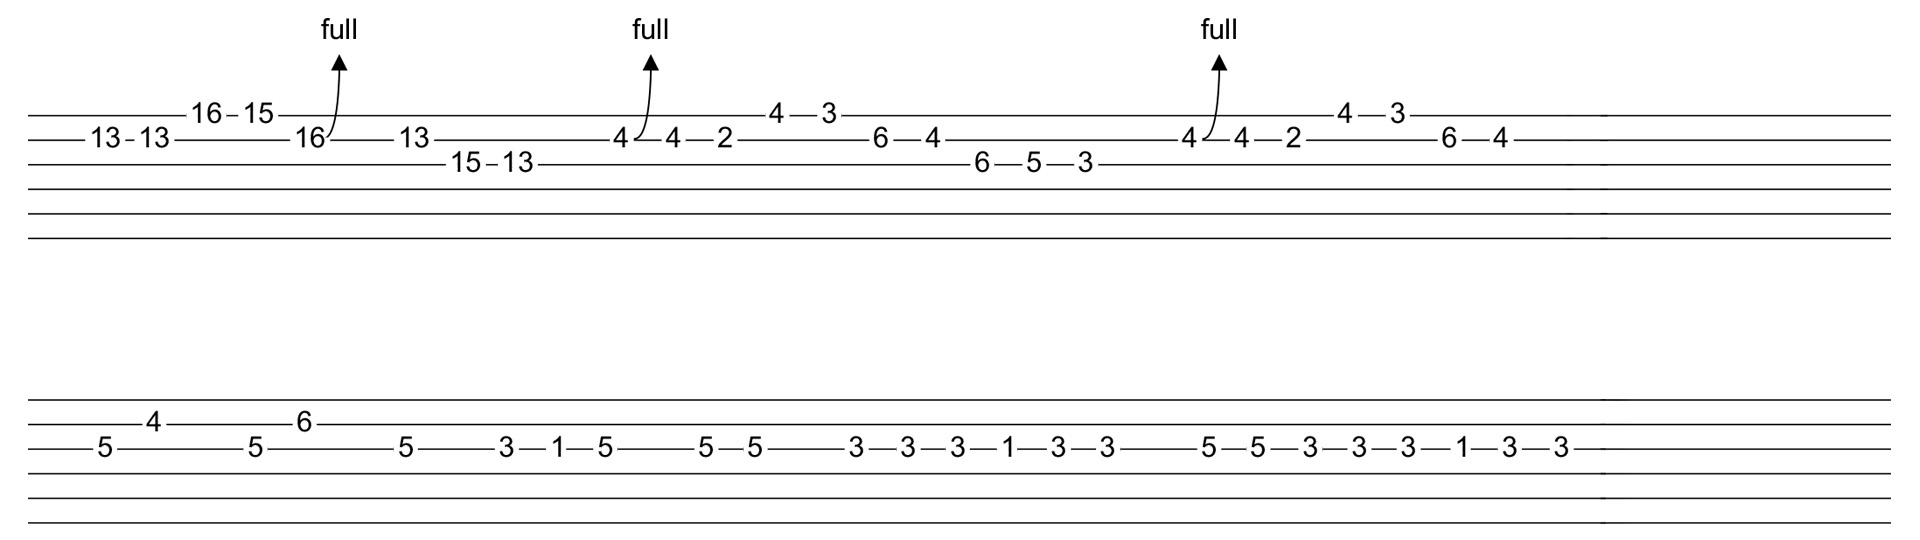 John legend all of me tabs kfir ochaion tabs for my electric guitar cover for the song all of me by john legend hexwebz Image collections